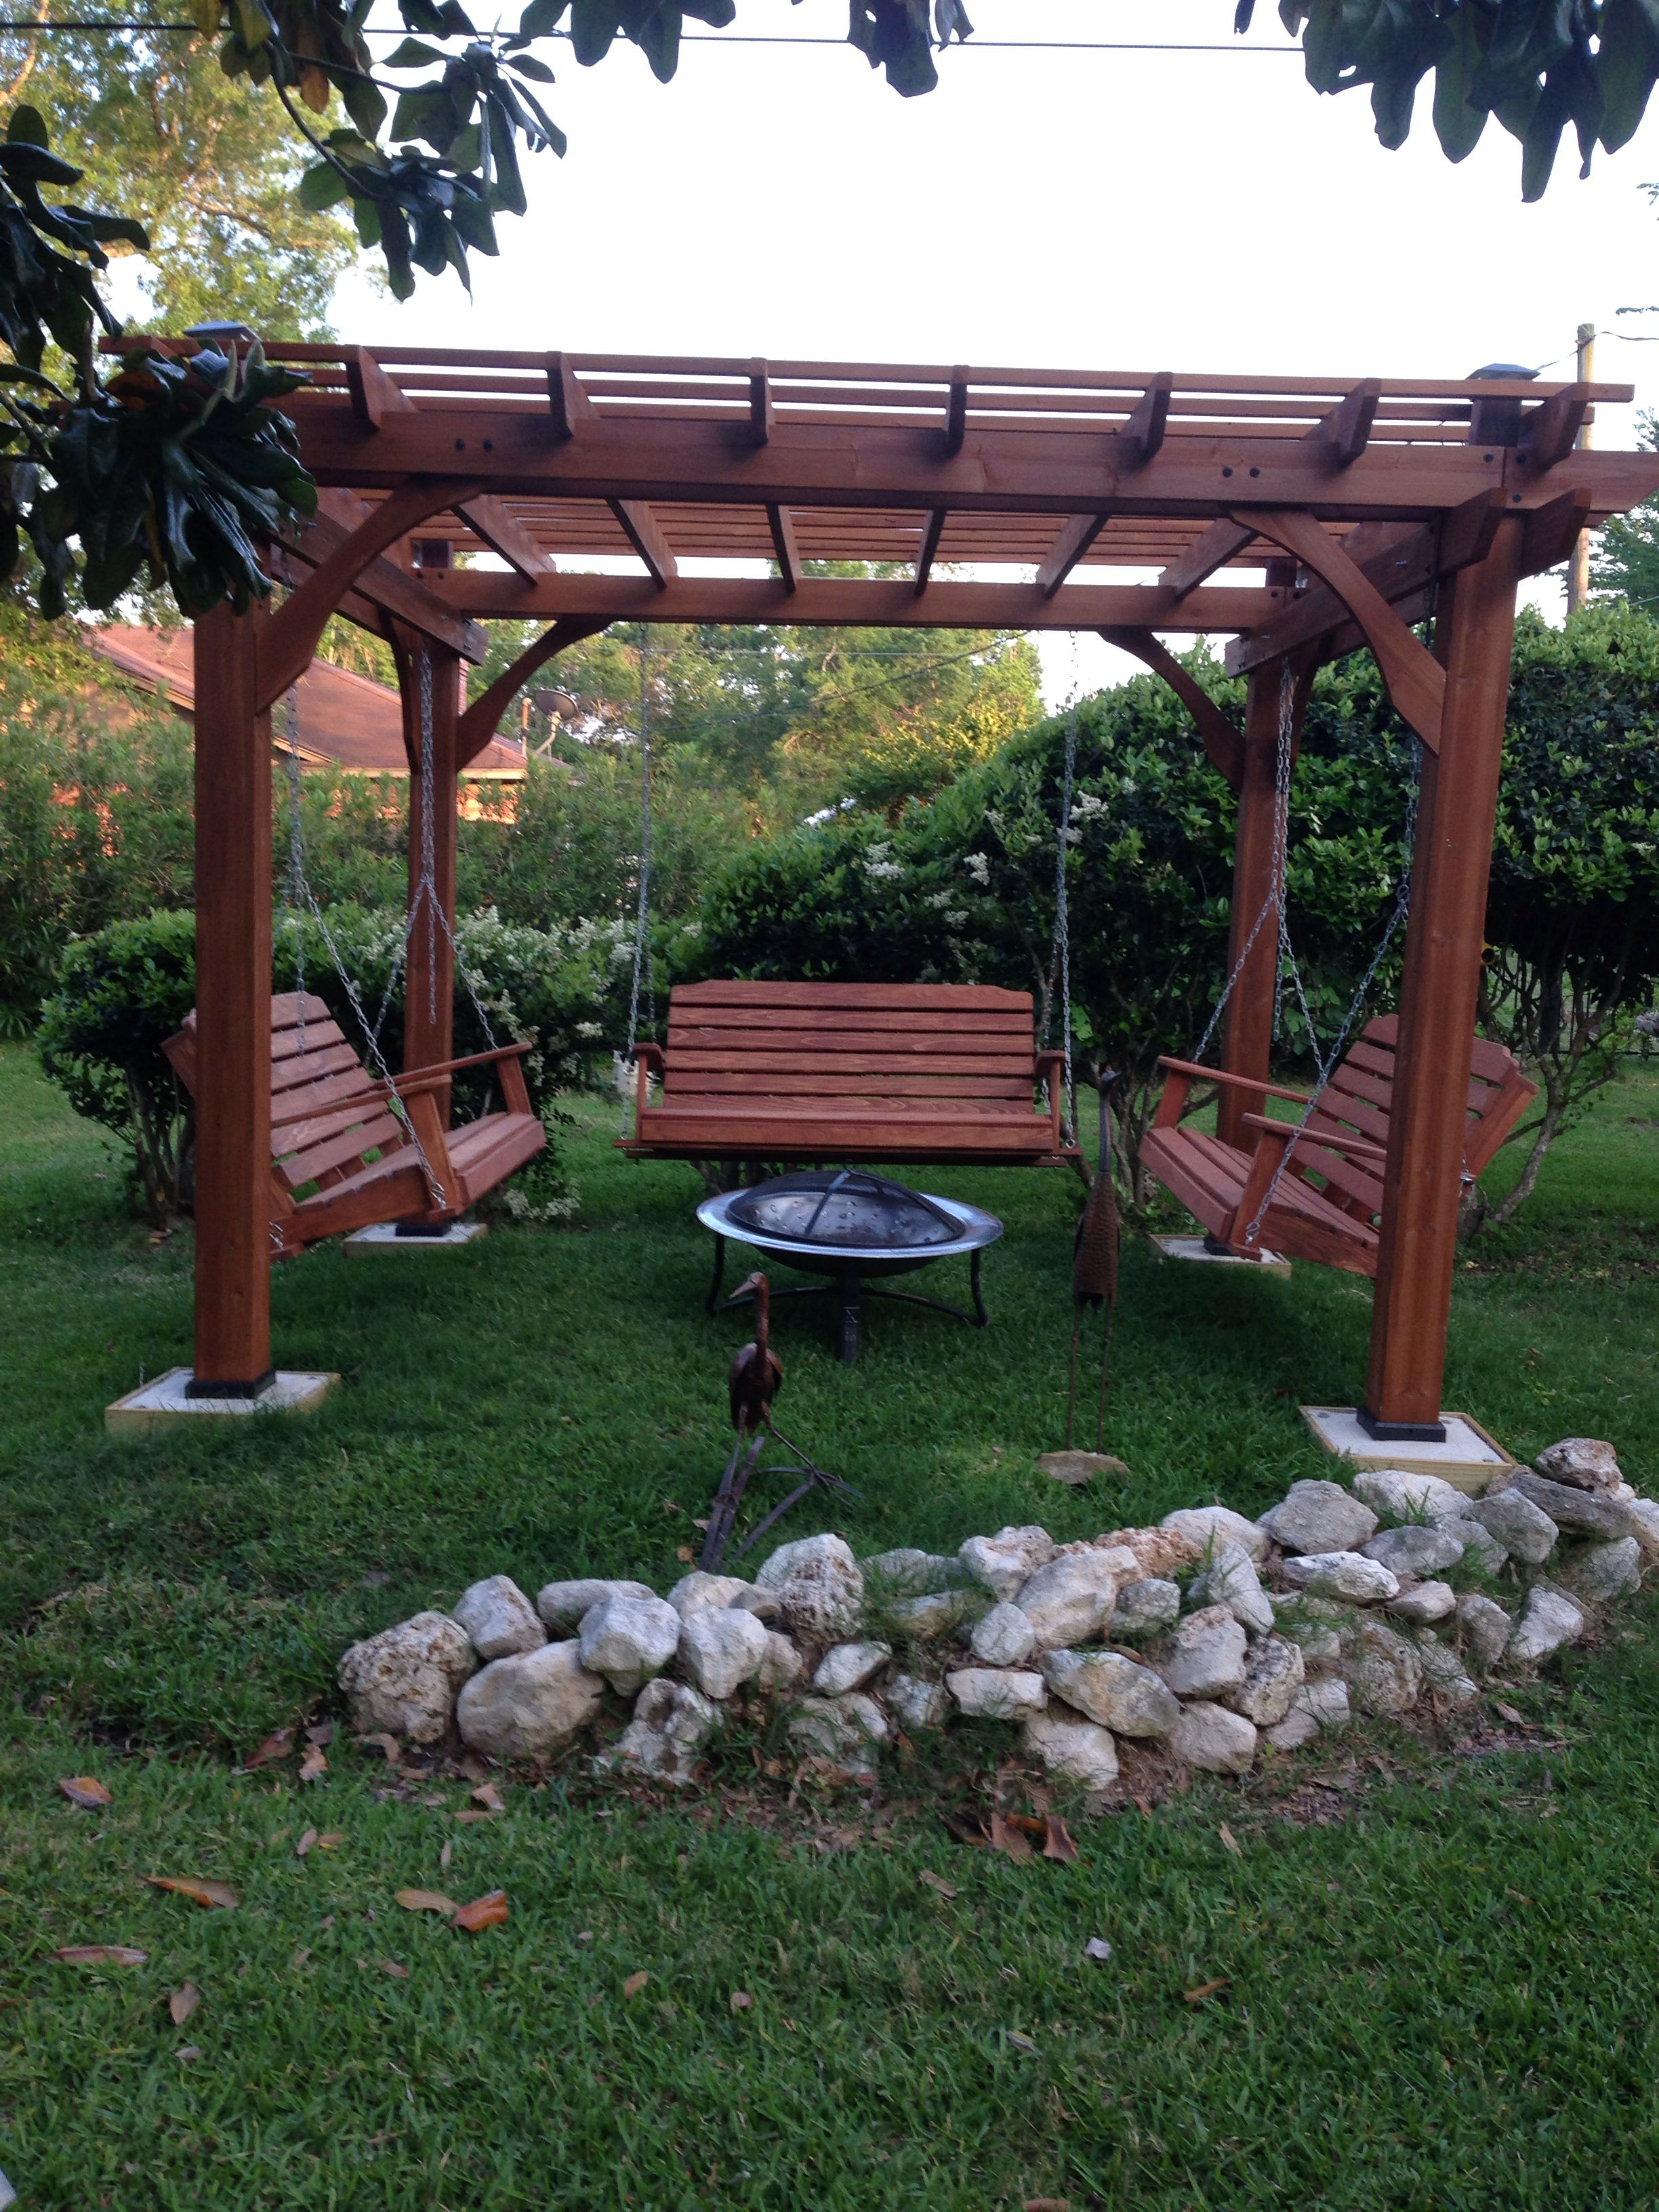 Great outdoor area with pergola swings and fire pit